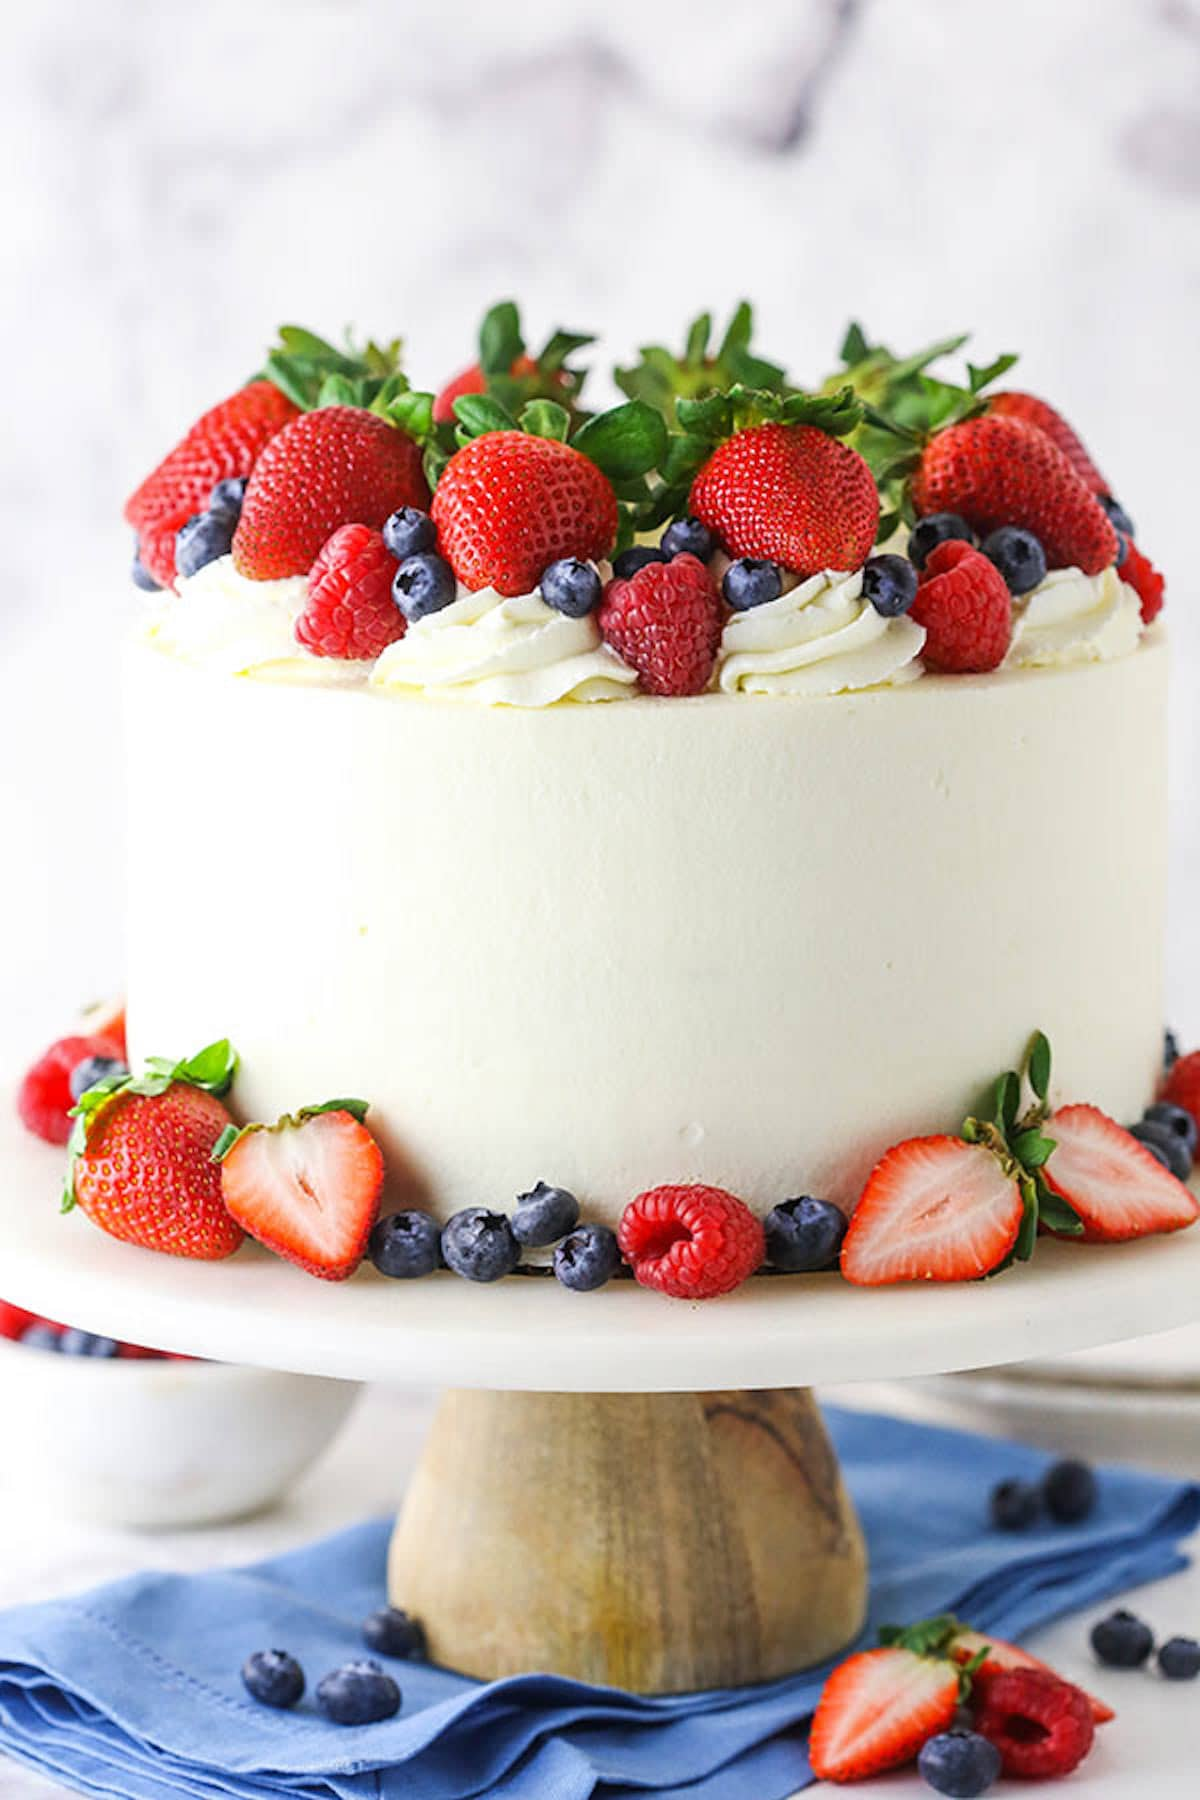 A Decorated Berry Layer Cake with Chantilly Cream Frosting on a Cake Stand